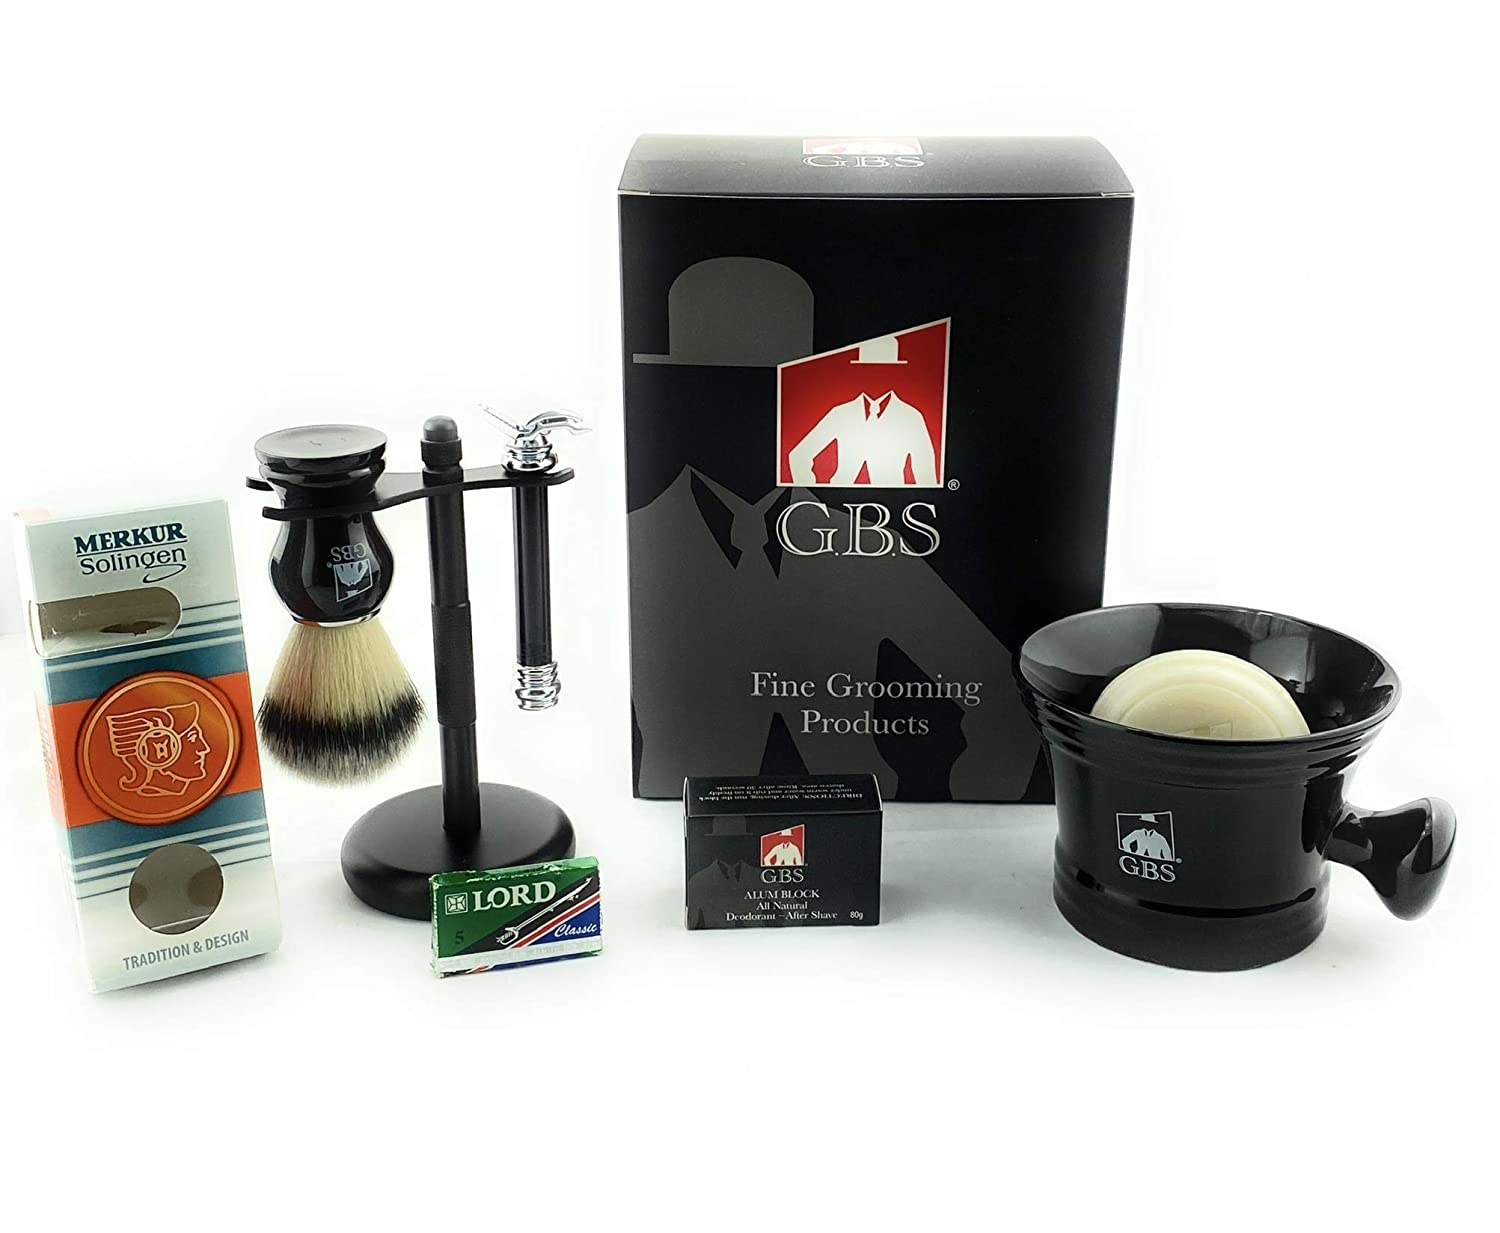 GBS Shaving Gift Set w/Germany Made MK 38011 Safety Razor 6 pc Set includes Mug Shaving Soap Badger Brush Stand and Razor Holiday Christmas Gift